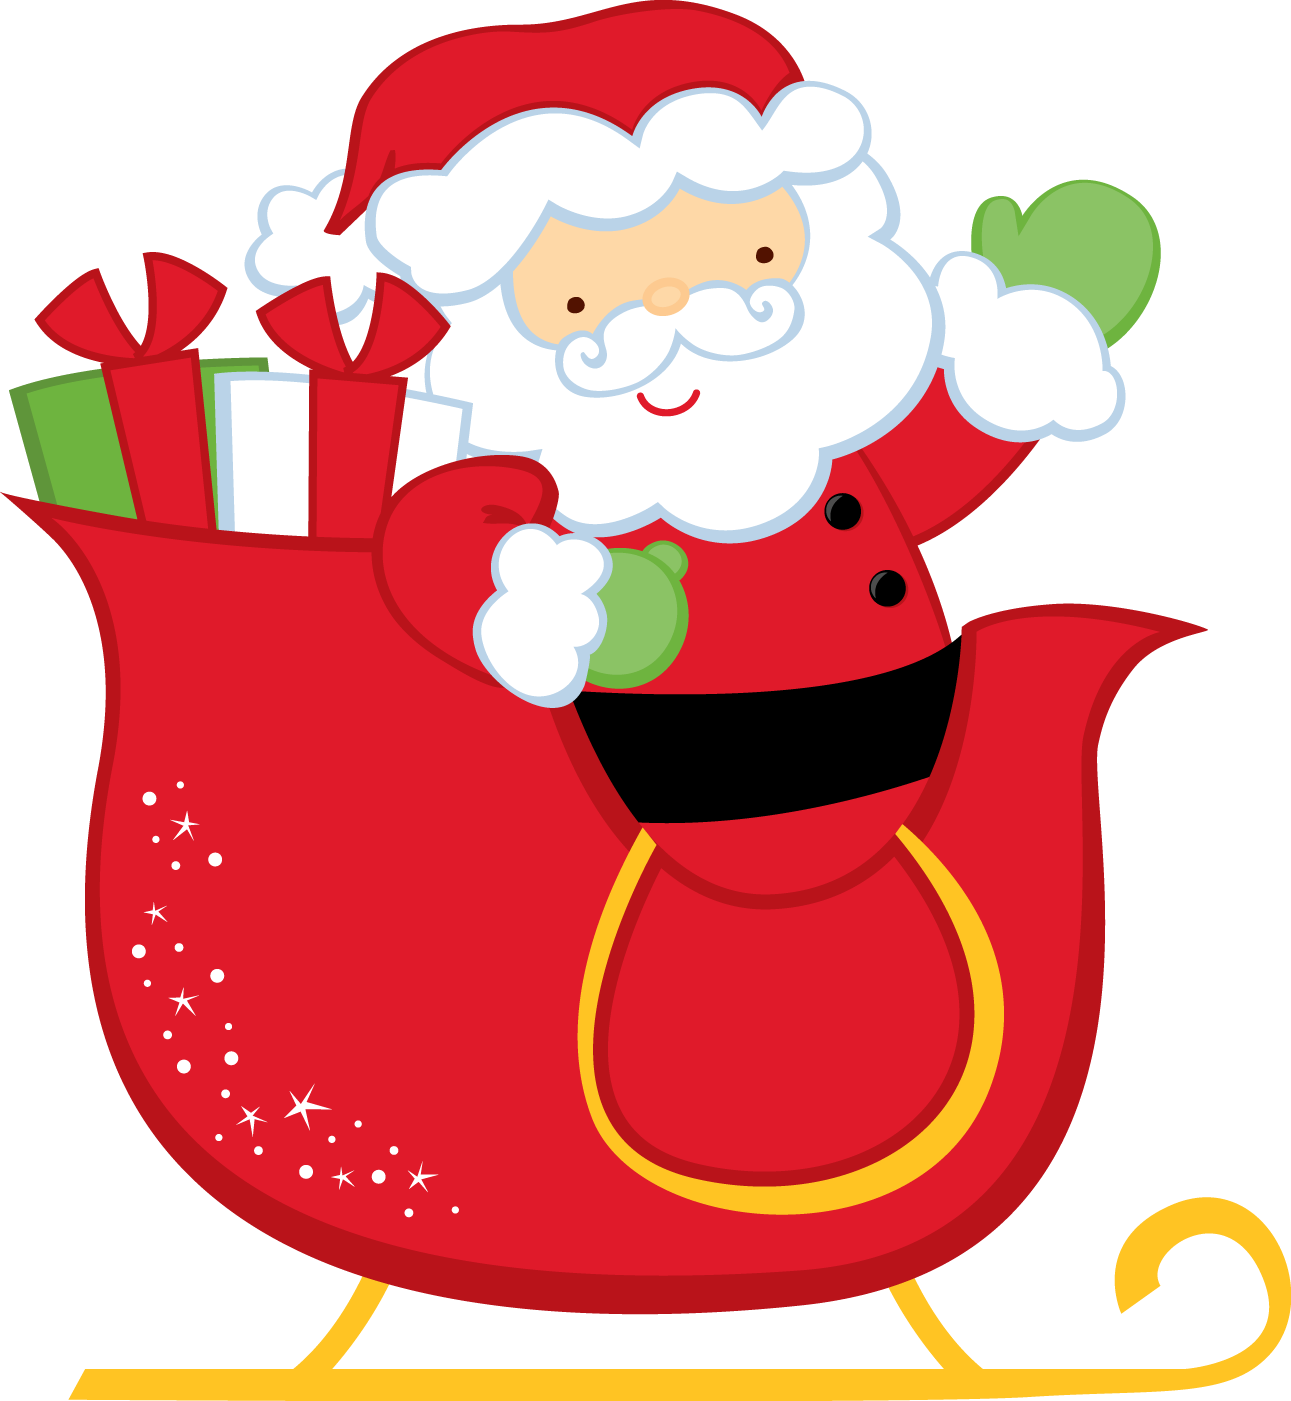 zwd santa sleigh png christmas graphics christmas cartoons christmas pictures christmas graphics